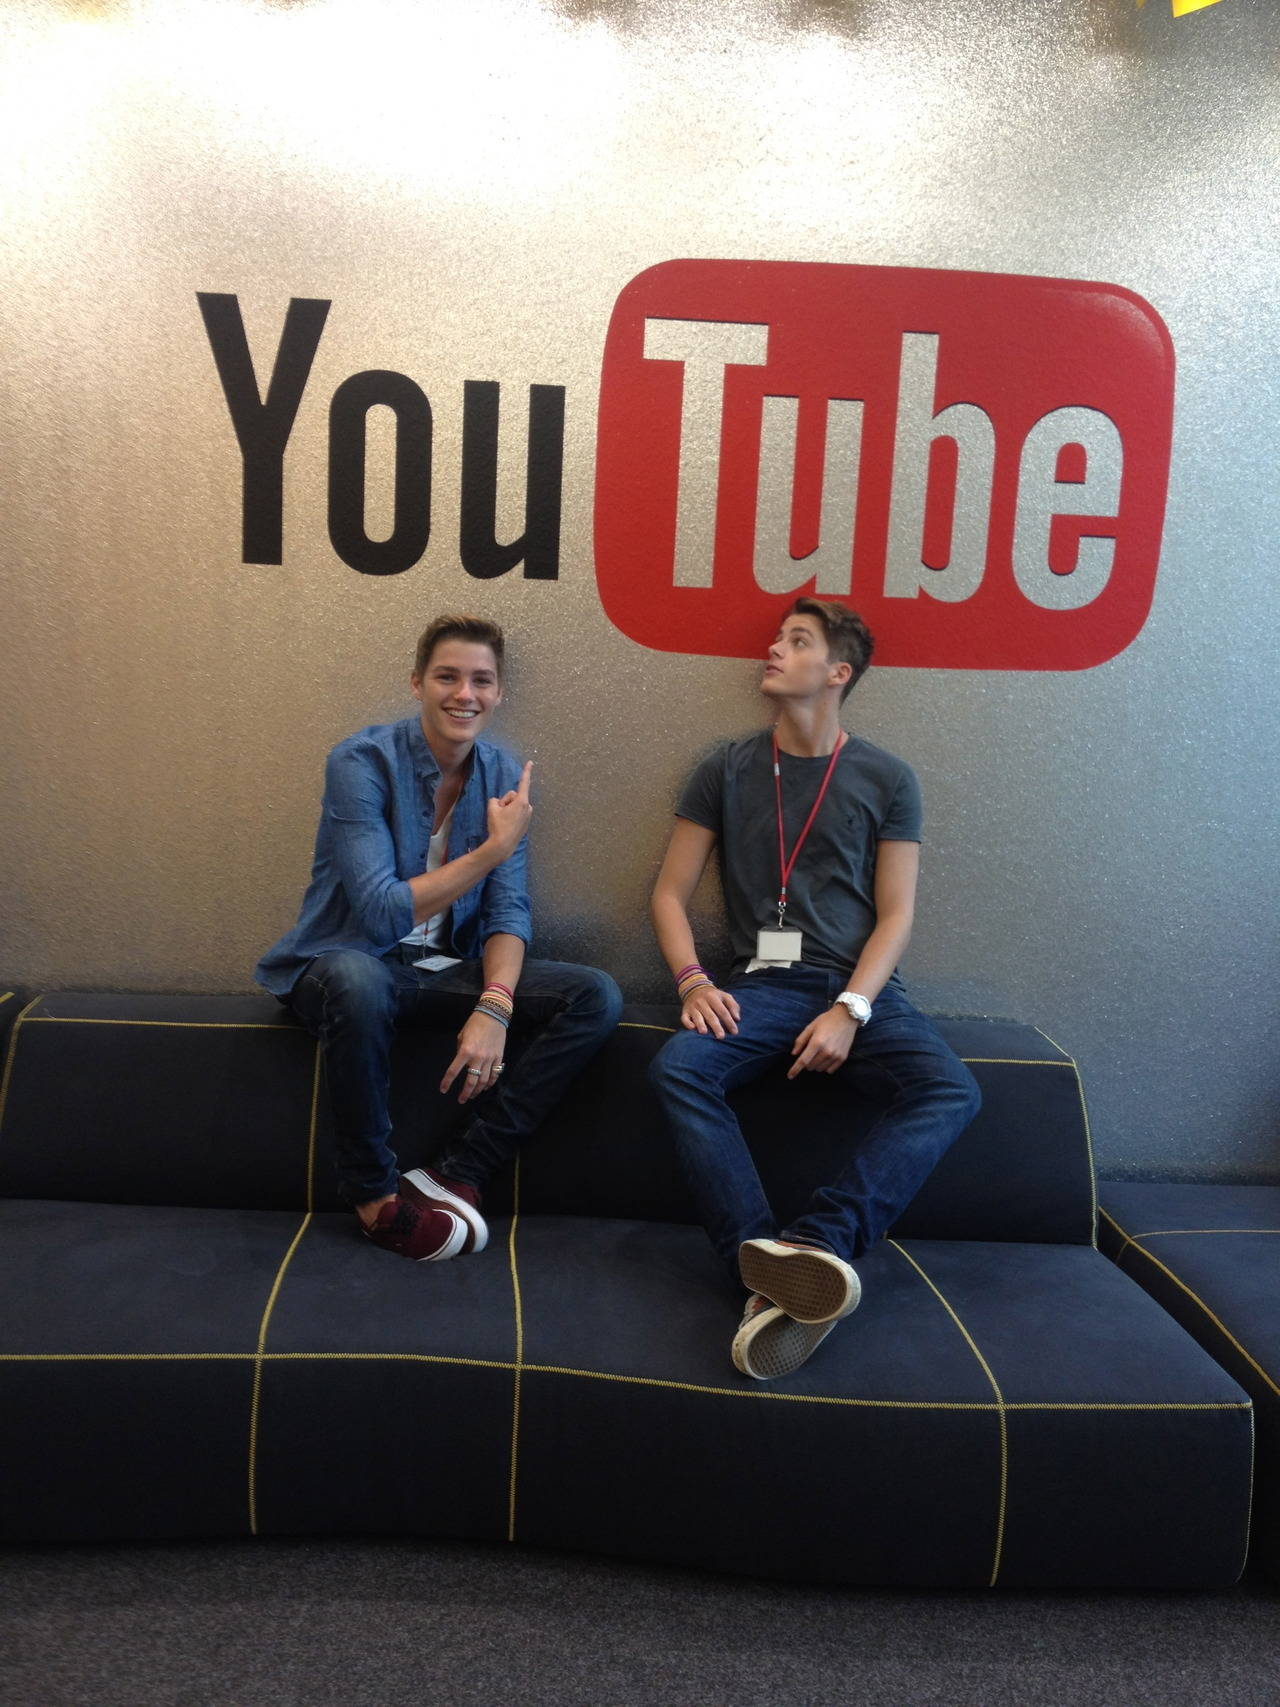 finnharries:  Youtube!